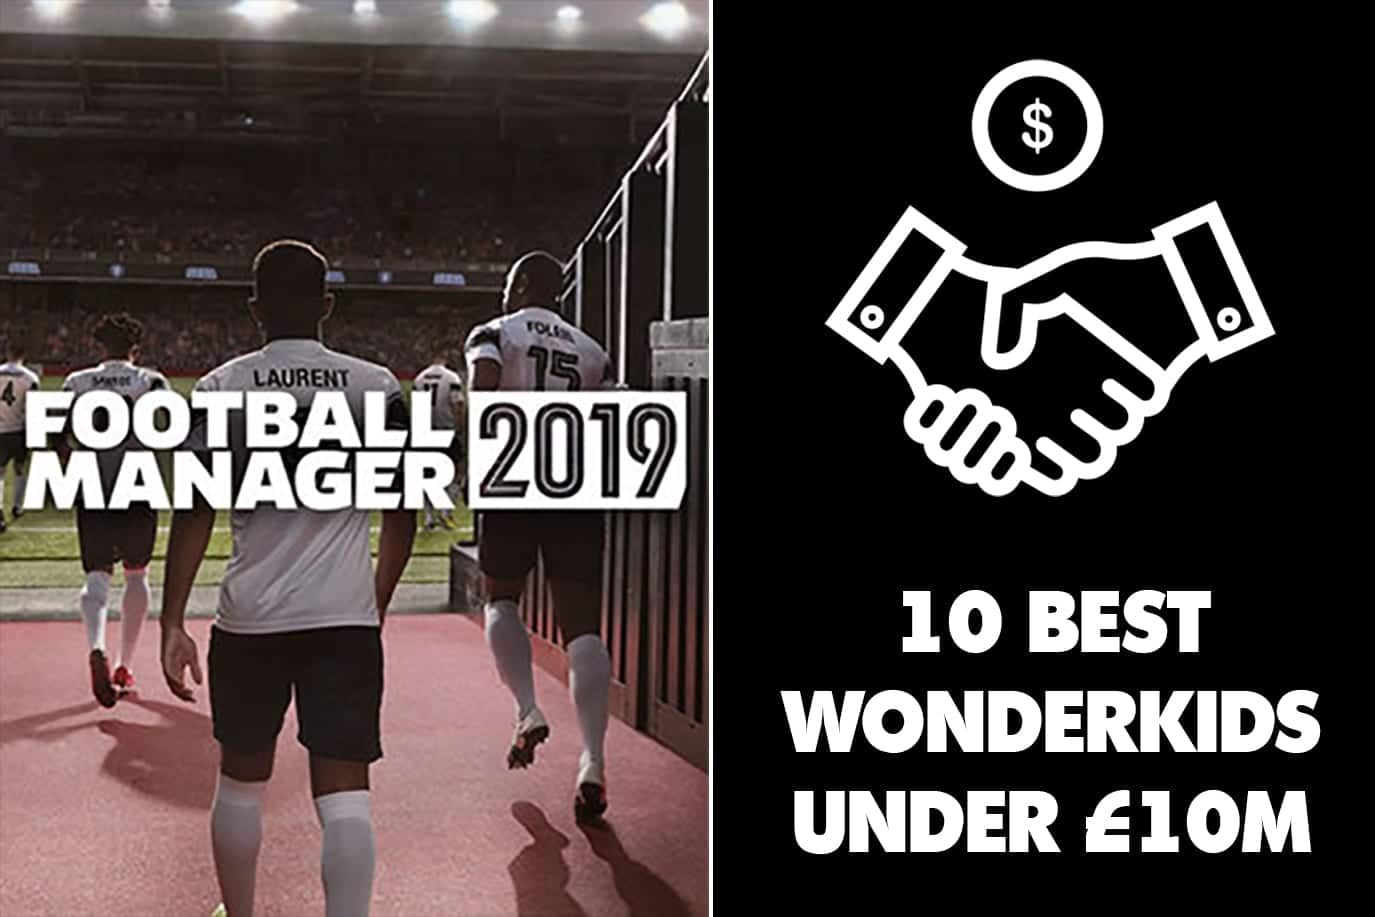 fm19 cheap wonderkids, football manager cheap wonderkids, fm19 sandro tonali, fm19 wonderkids, wonderkids under 10m football manager 19 cheap wonderkids